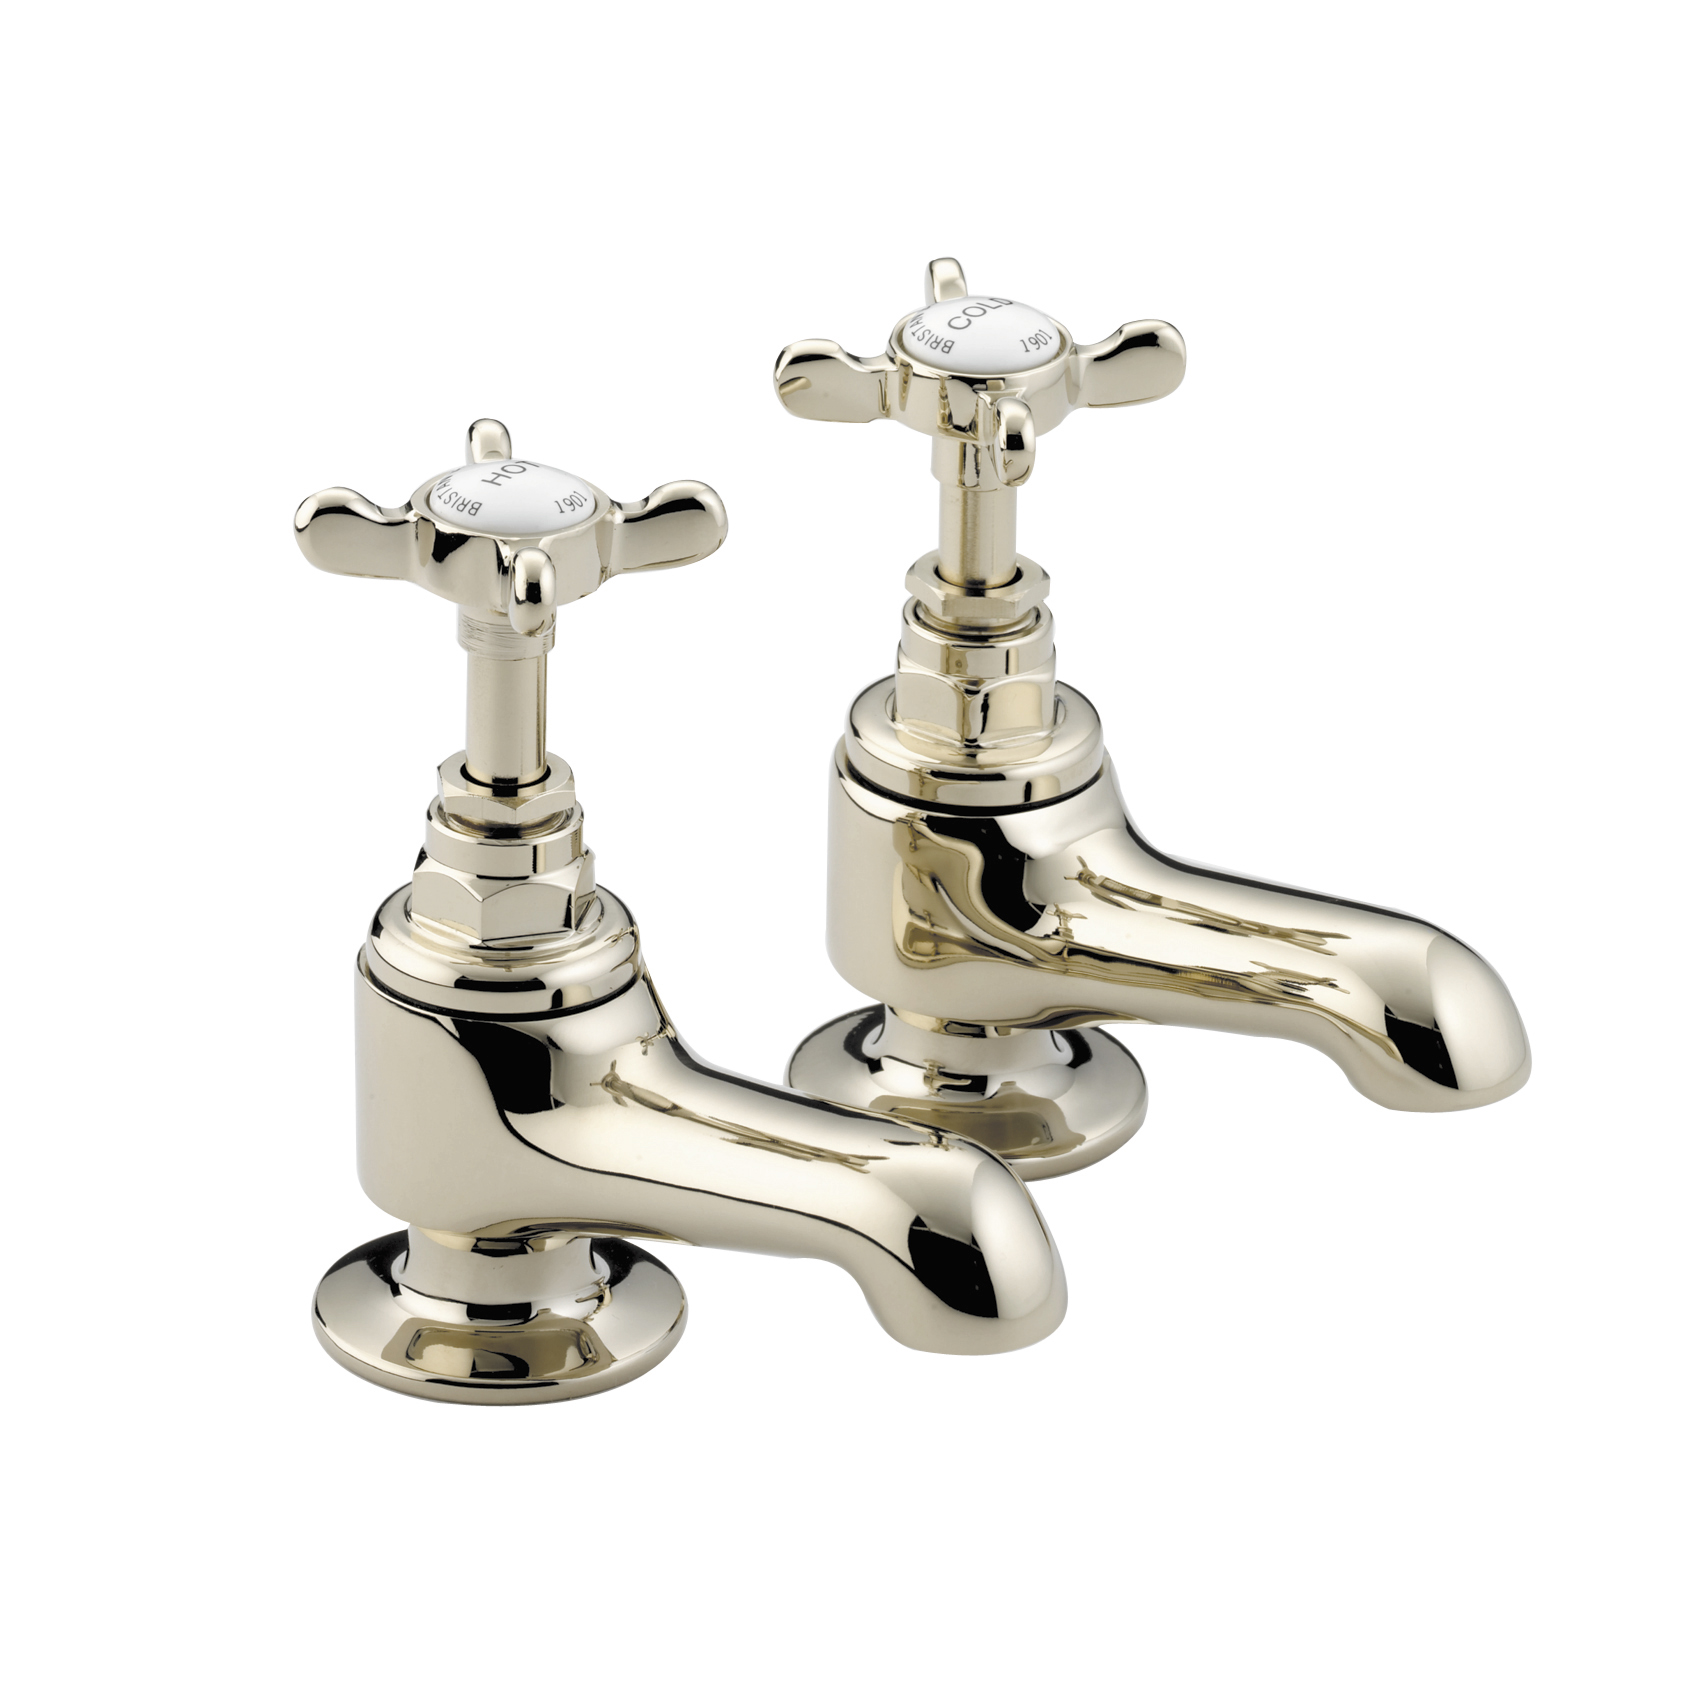 BRISTAN 1901 BATH PILLAR TAPS GOLD